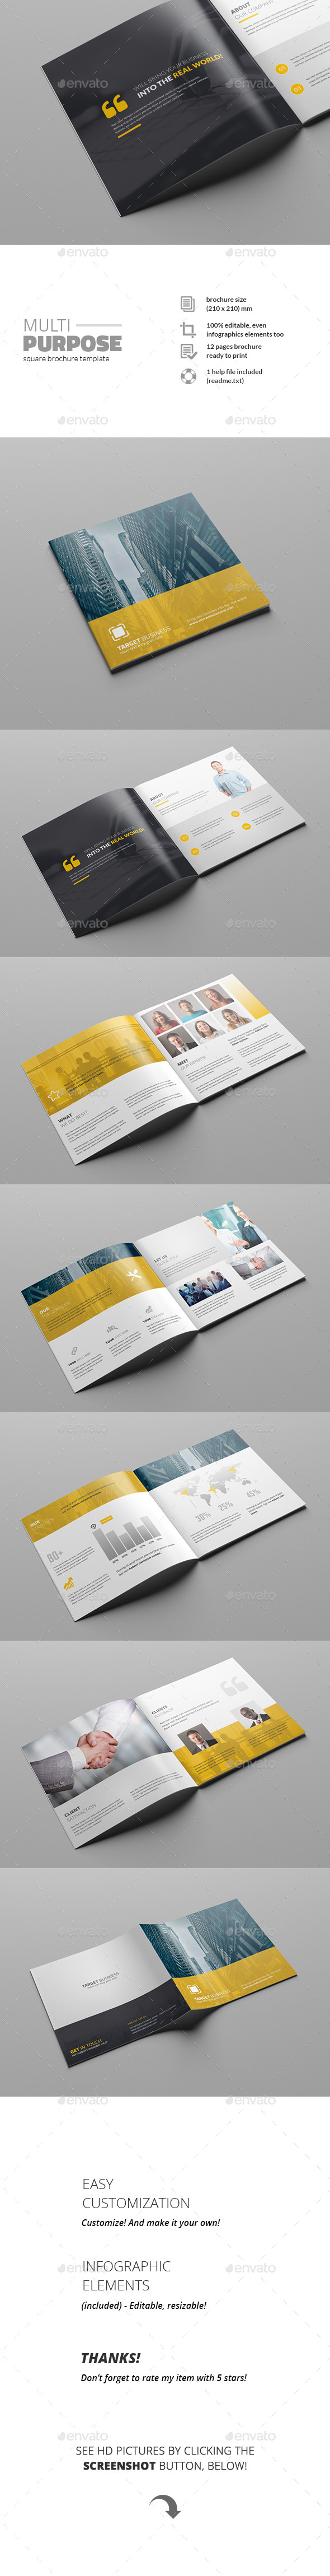 GraphicRiver Multipurpose Square Brochure 11641822